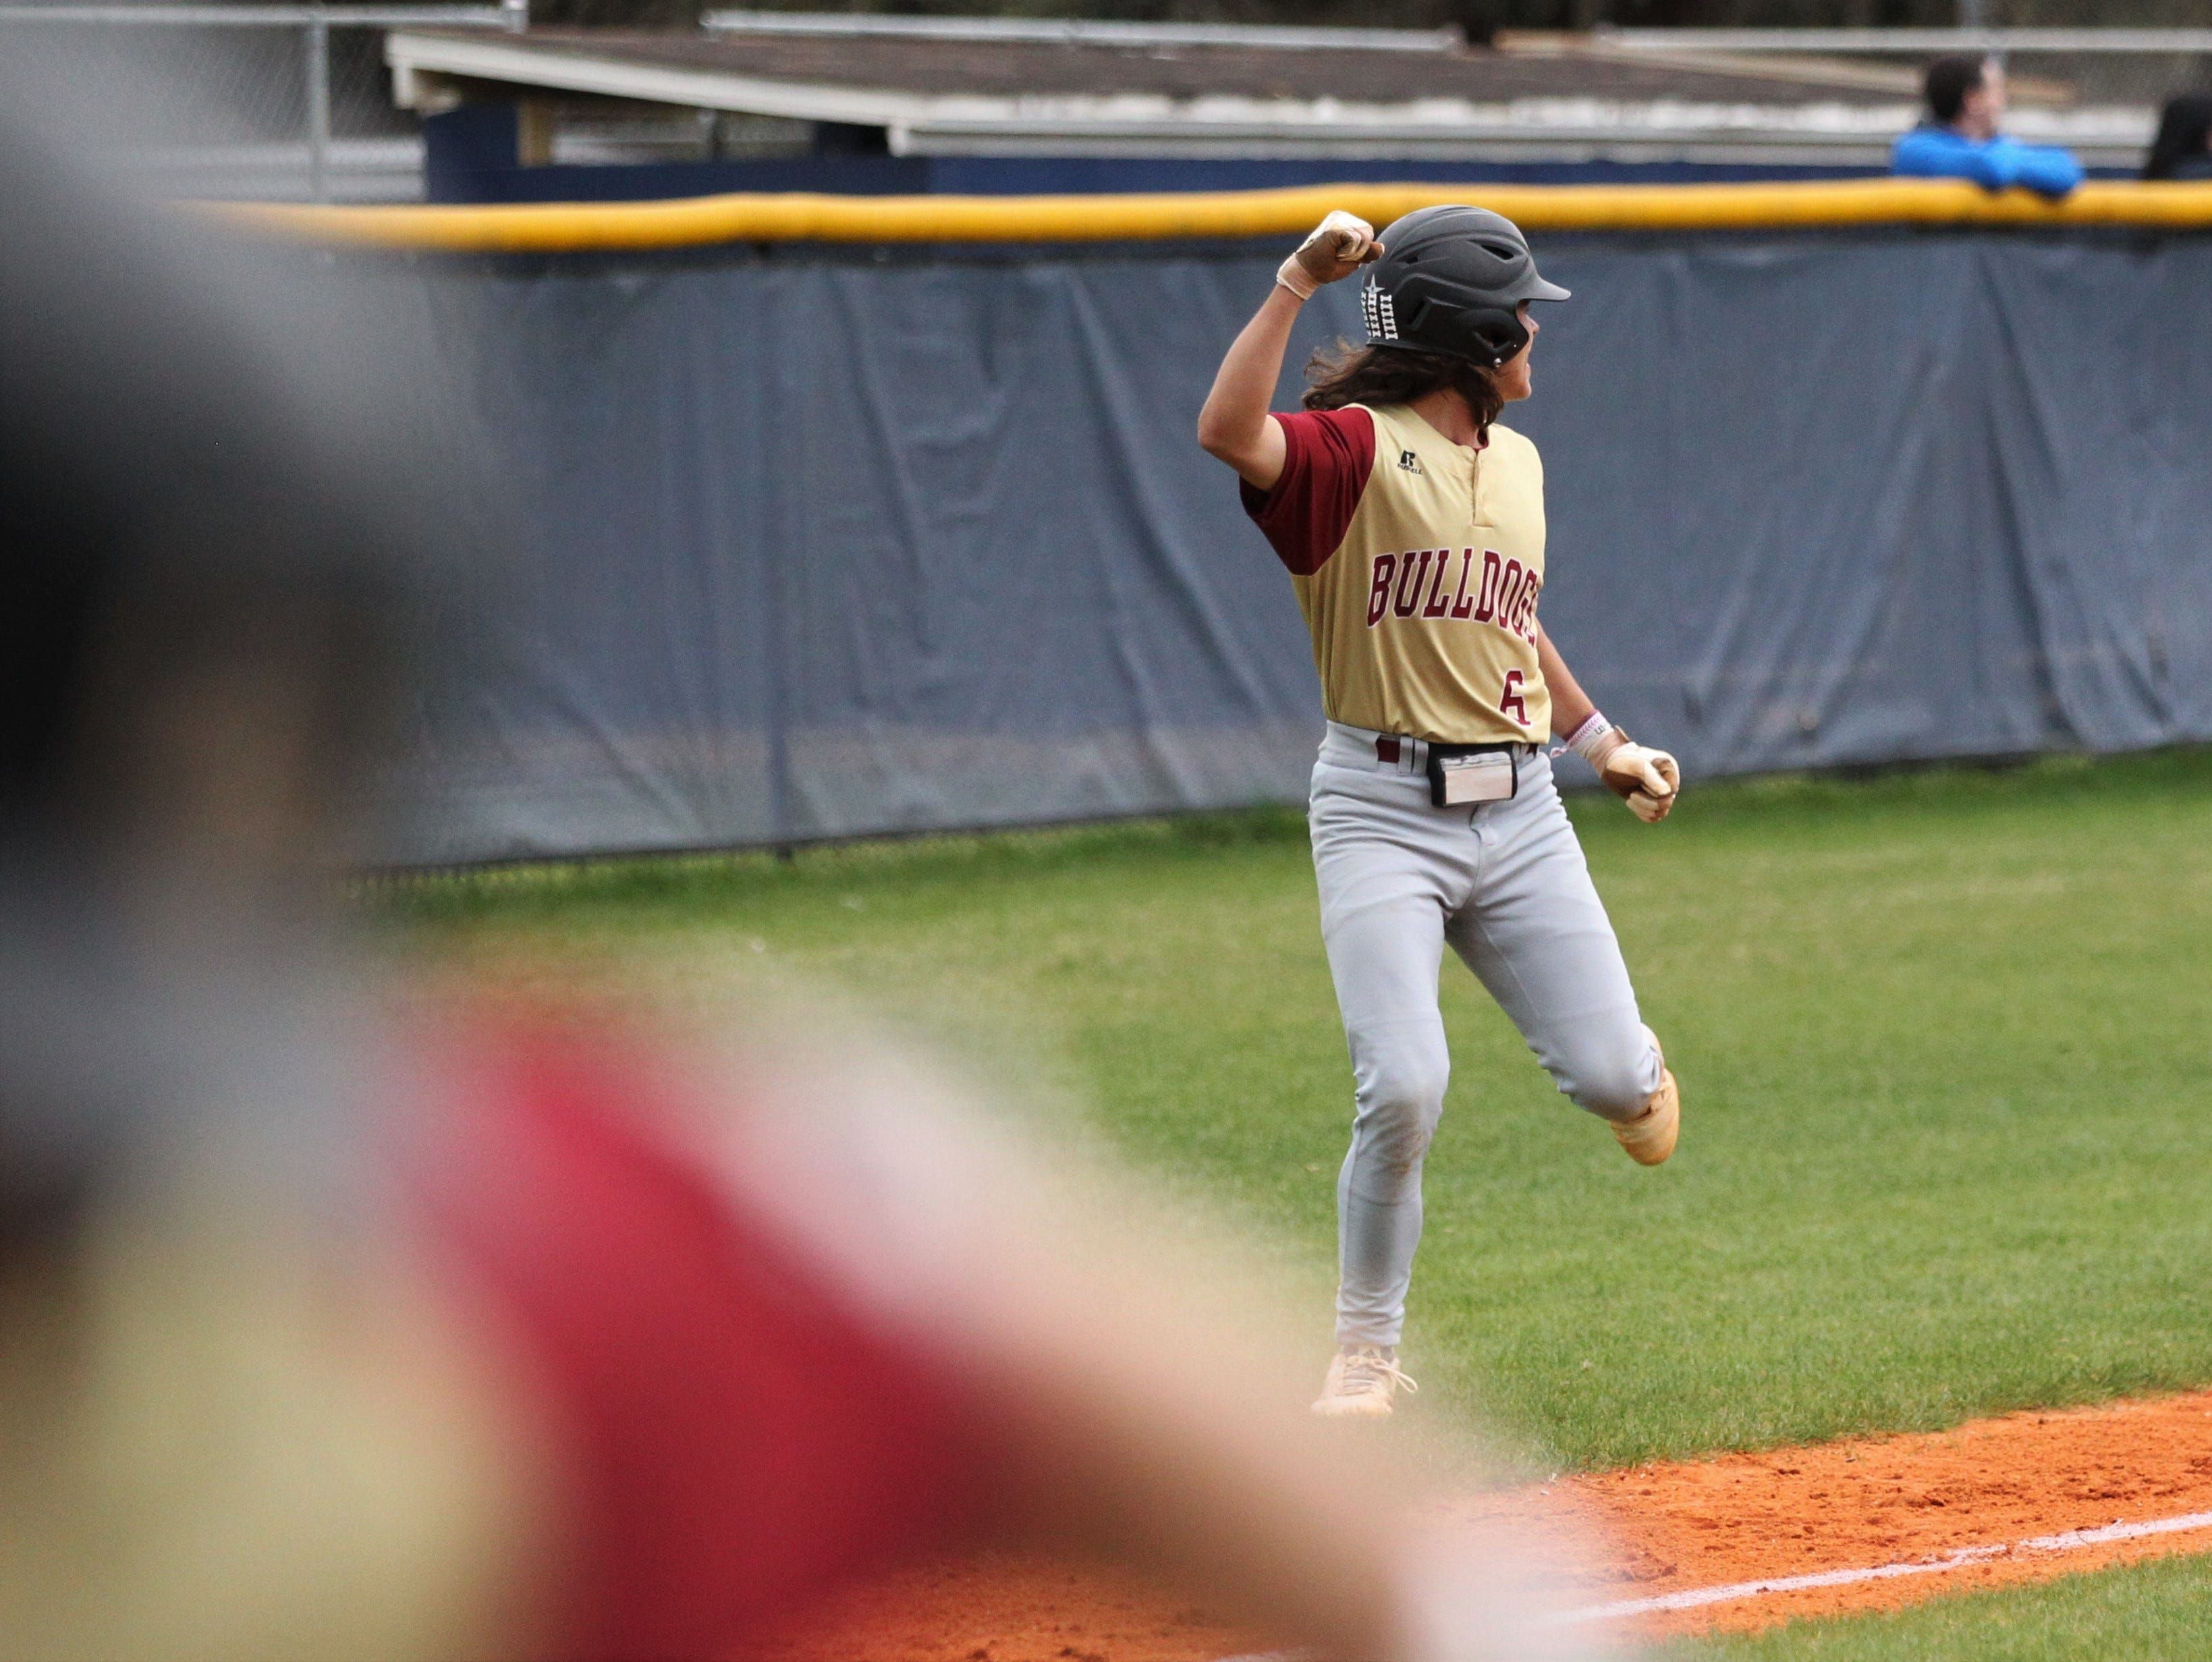 Liberty County's Charlie Burns watches as Brice Dillmore's home run hits the scoreboard as Liberty County's baseball team went on the road to beat Maclay 8-2 on Saturday, March 16, 2019. The Bulldogs played their first game following their head coach Corey Crum's tragic death six days ago.